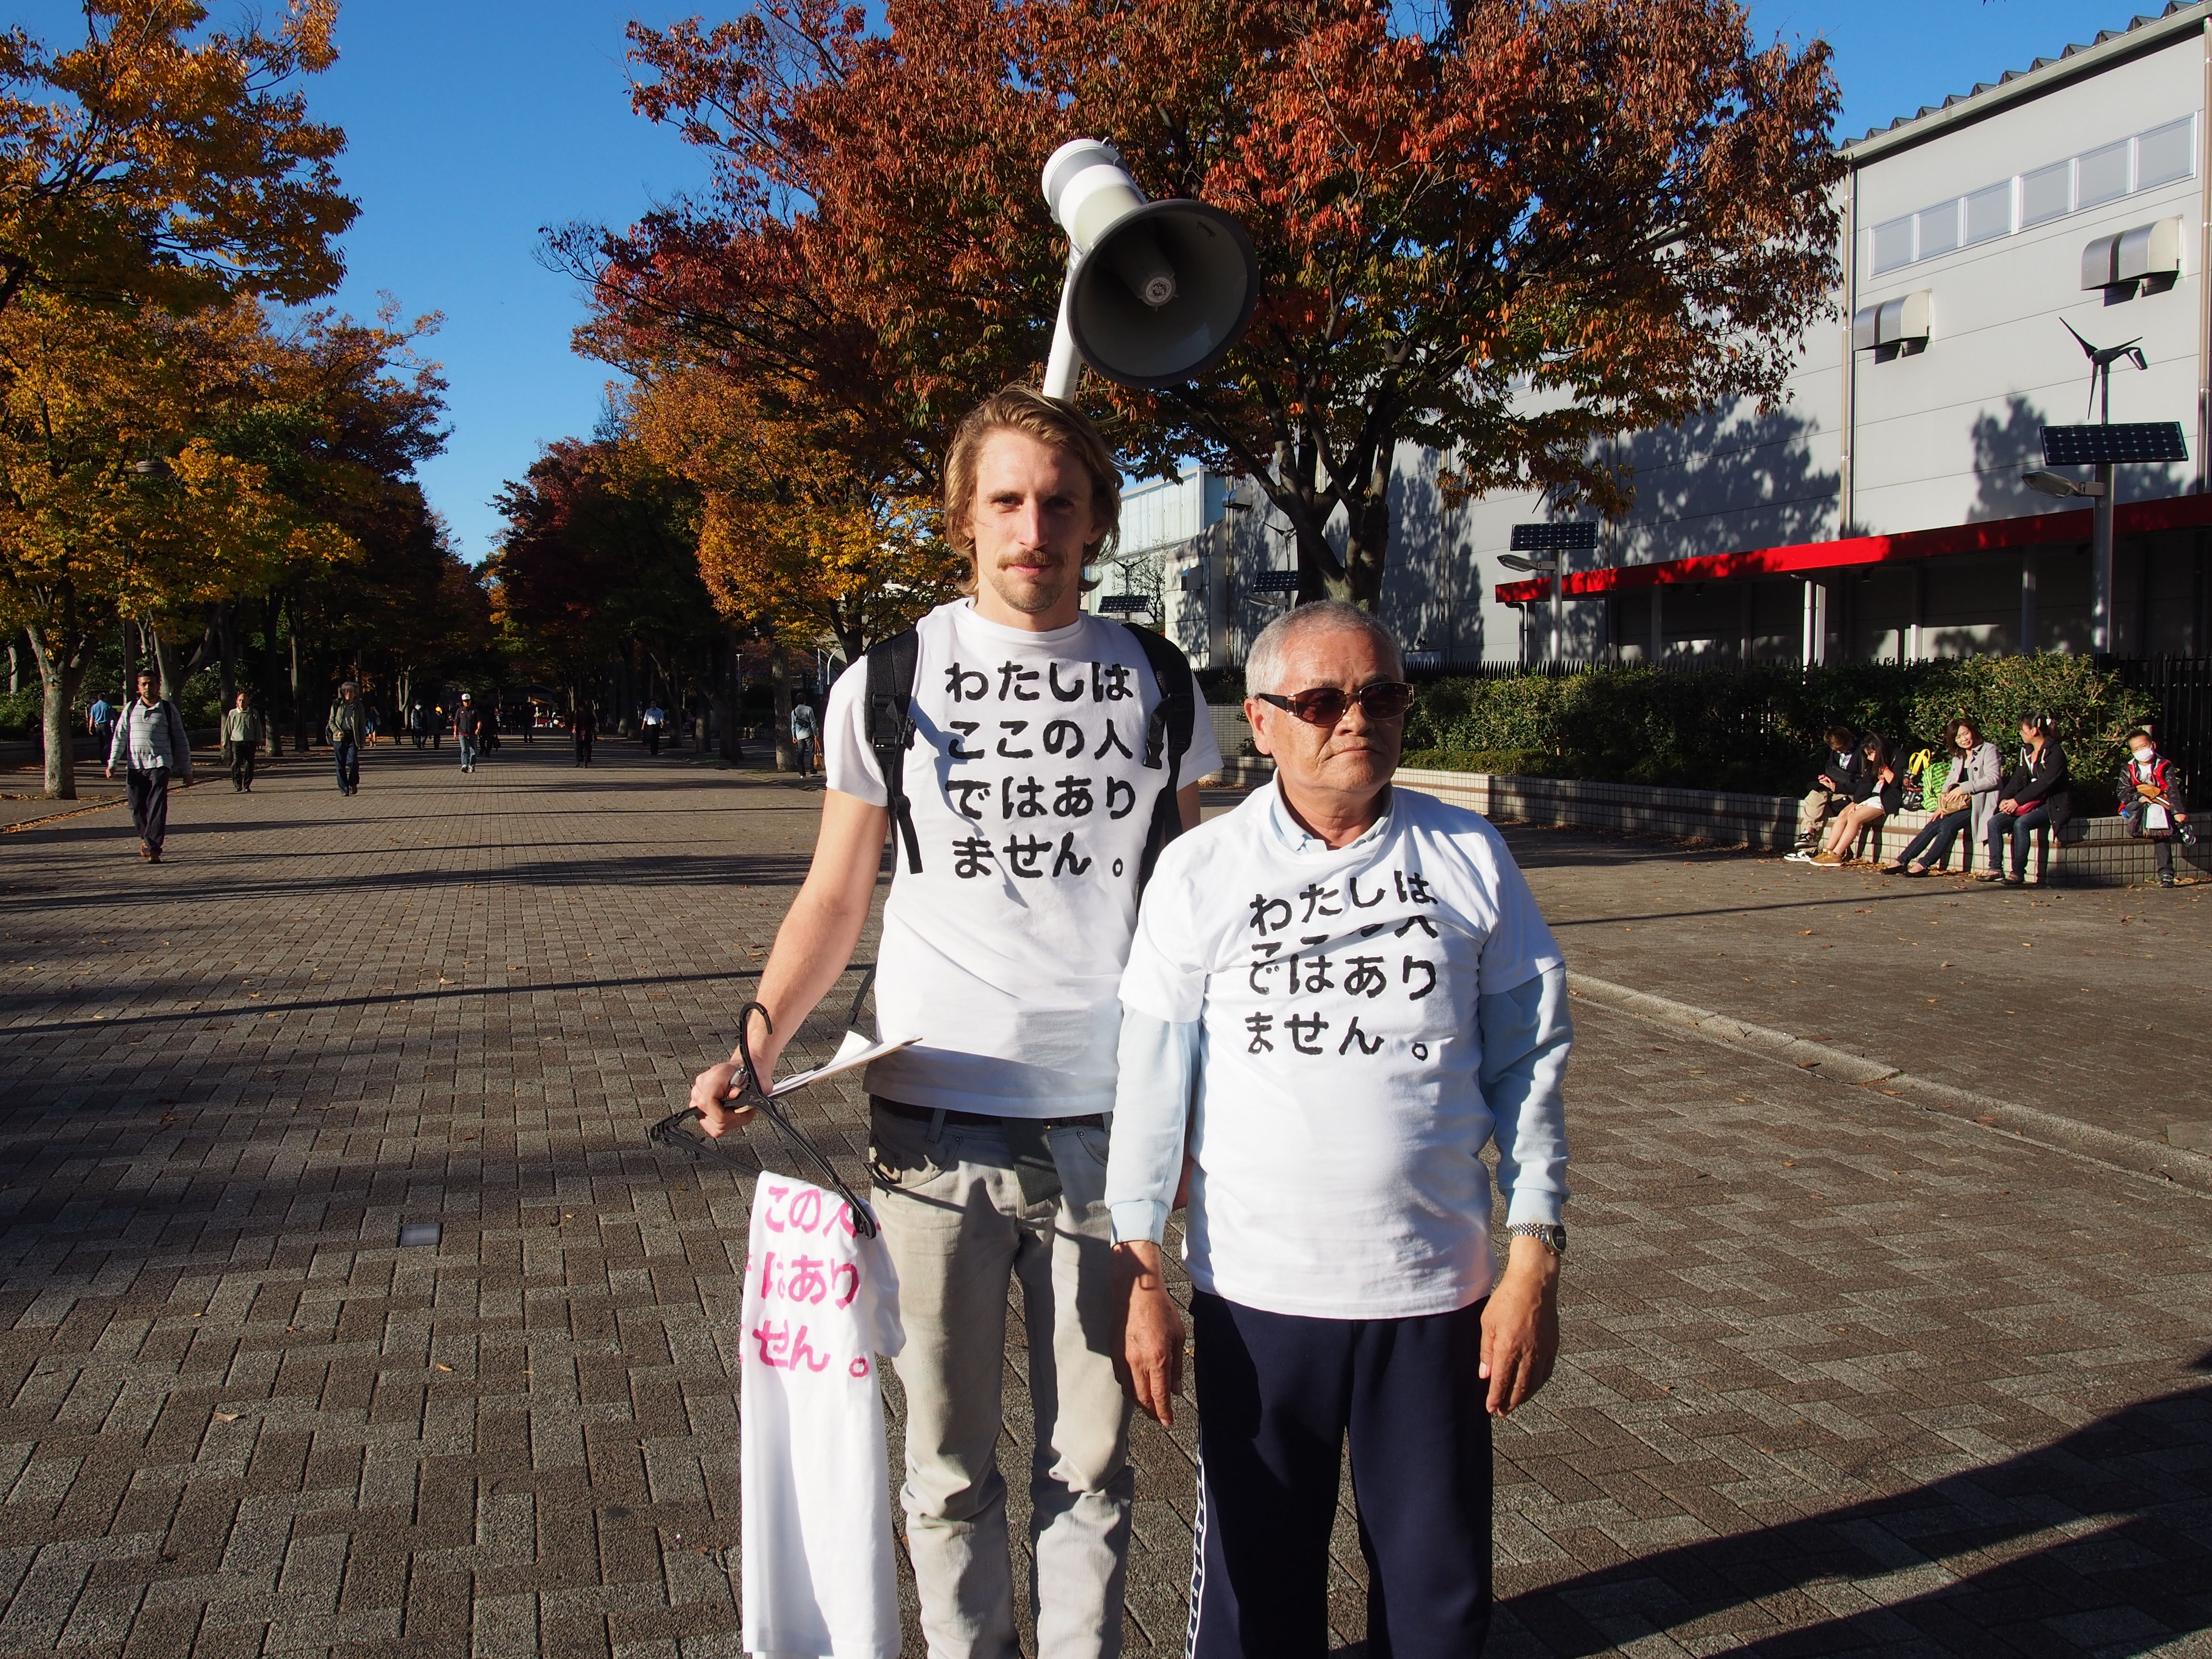 I took to the streets to sell my T-shirts. A white t-shirt with printed on it the text 'I am not from here'. 私は自分でつくったTシャツを売るために街に出た。白いTシャツには「わたしはここの人ではありません。」という言葉がプリントされている。